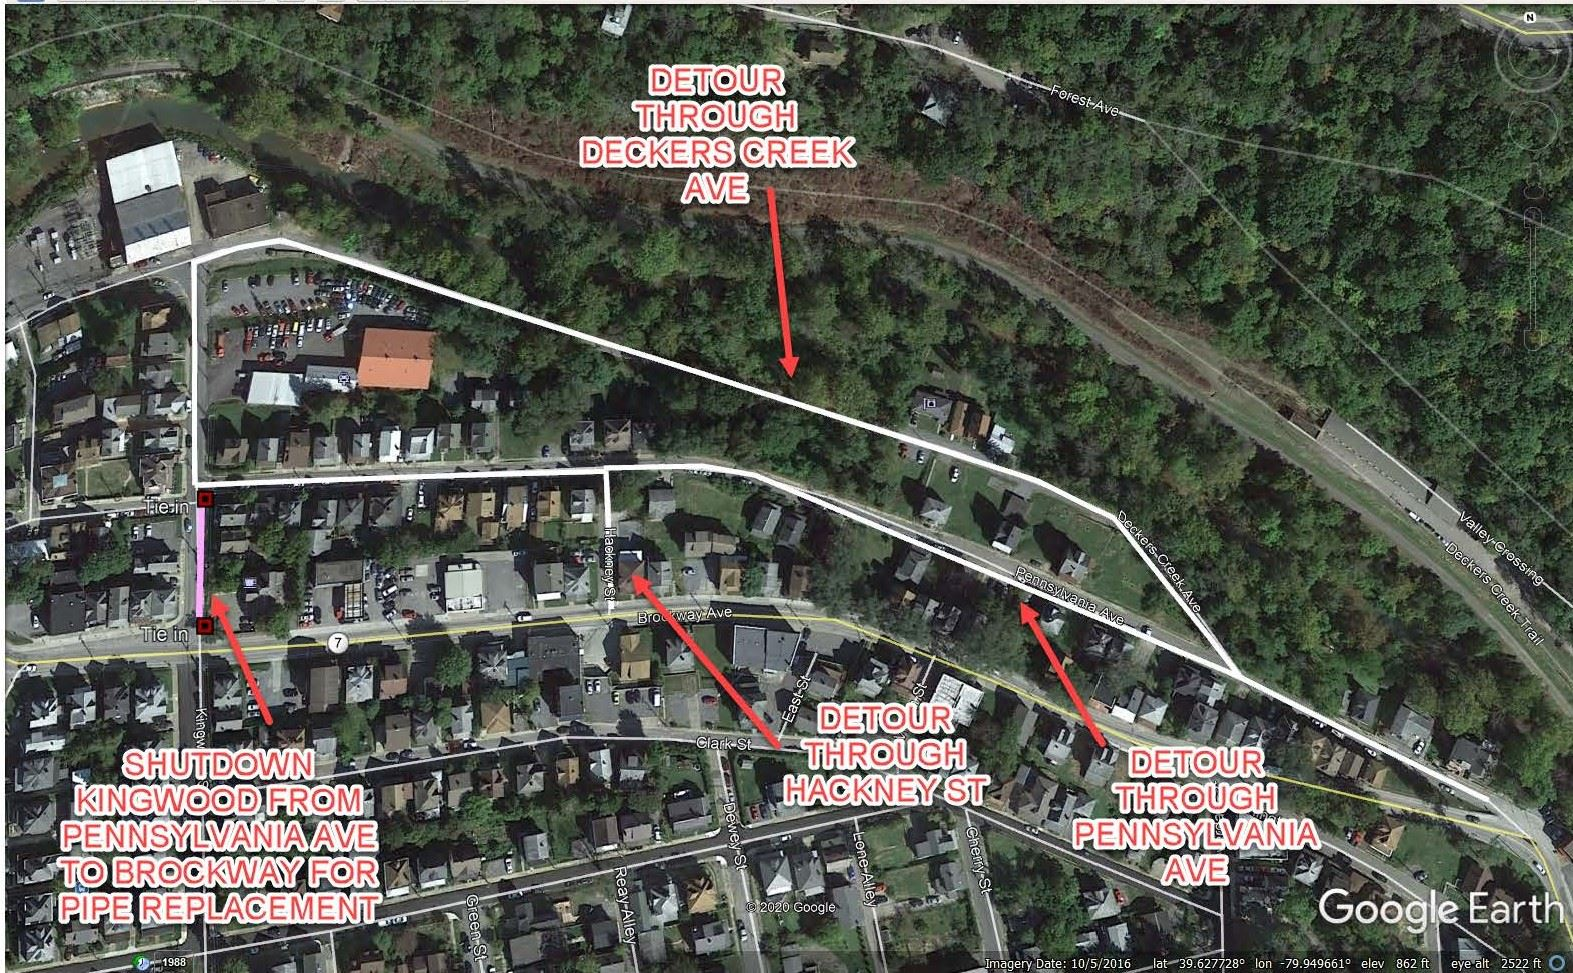 PROPOSED DETOUR FOR KINGWOOD STREET PIPE REPLACEMENT